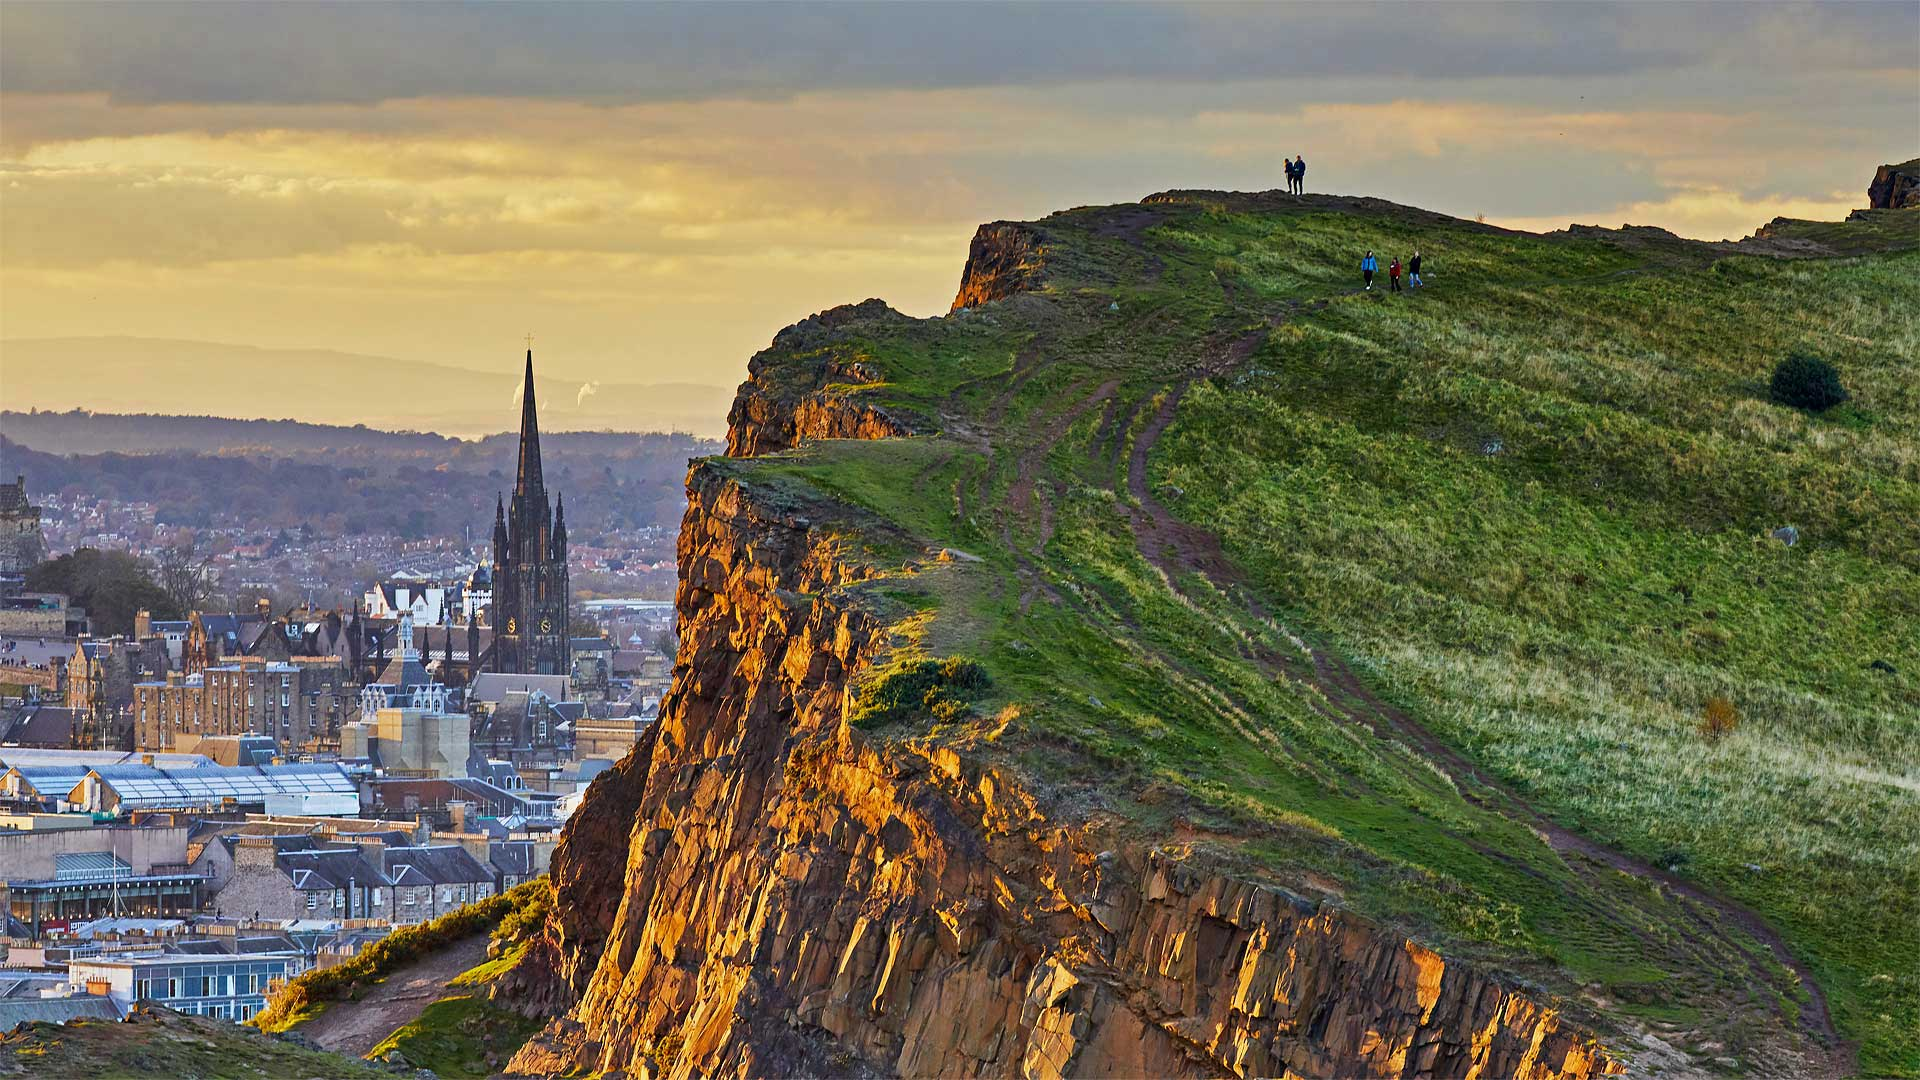 Salisbury Crags in Holyrood Park, Edinburgh, Scotland (? Andrew Merry/Getty Images)